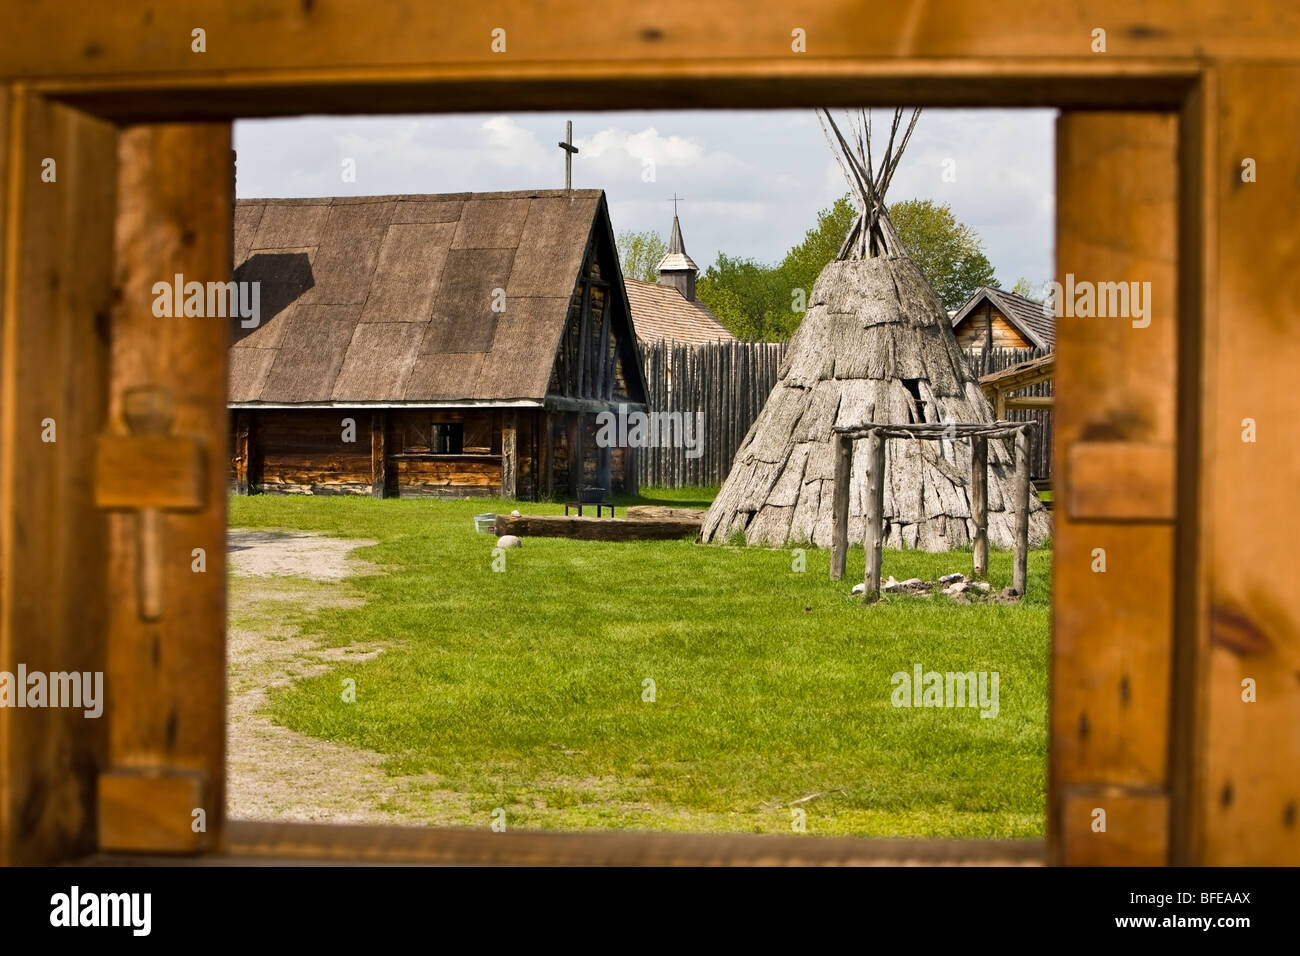 Looking out hospital window at a teepee in the Sainte-Marie Among the Hurons settlement in the town of Midland, - Stock Image